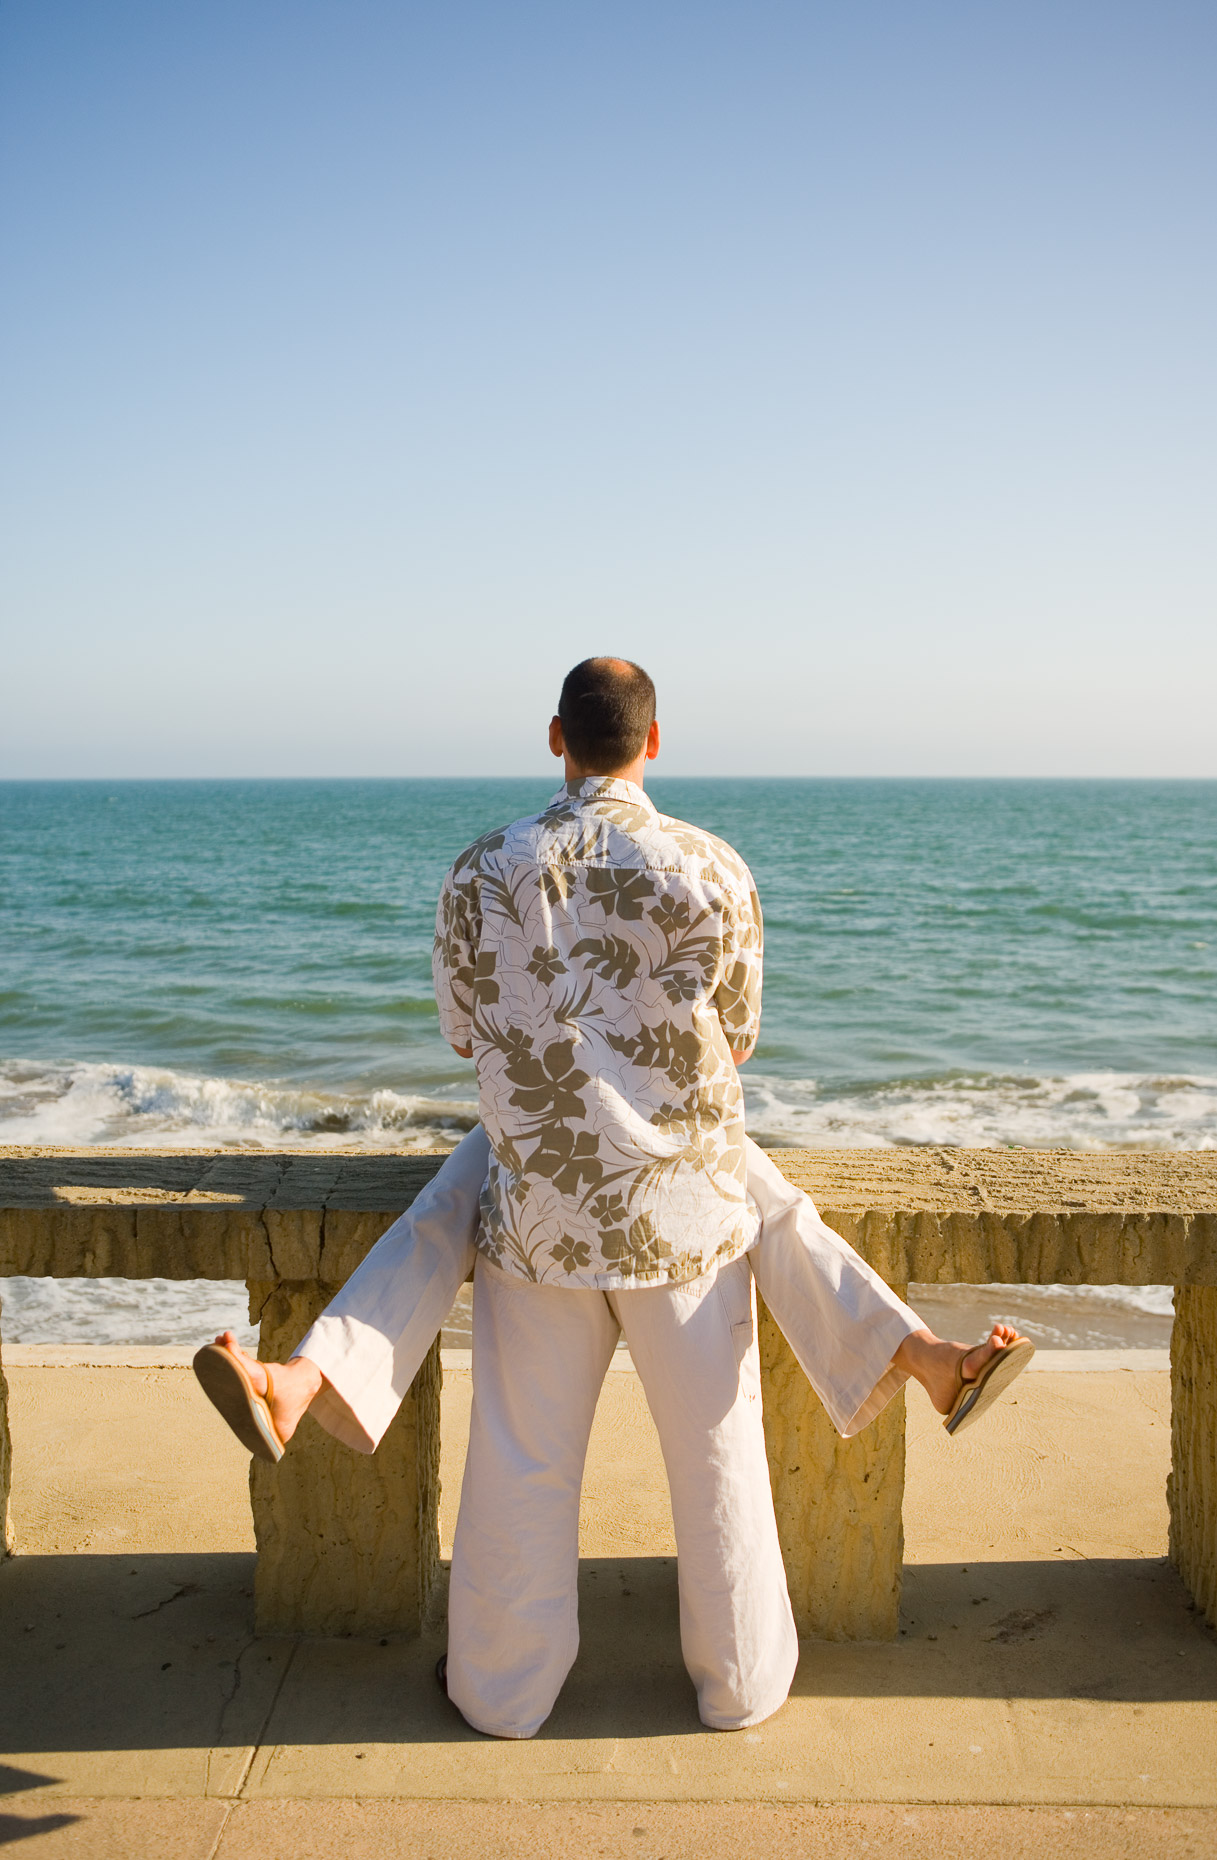 Man and woman at concrete railing overlooking ocean in Santa Barbara, California by David Zaitz